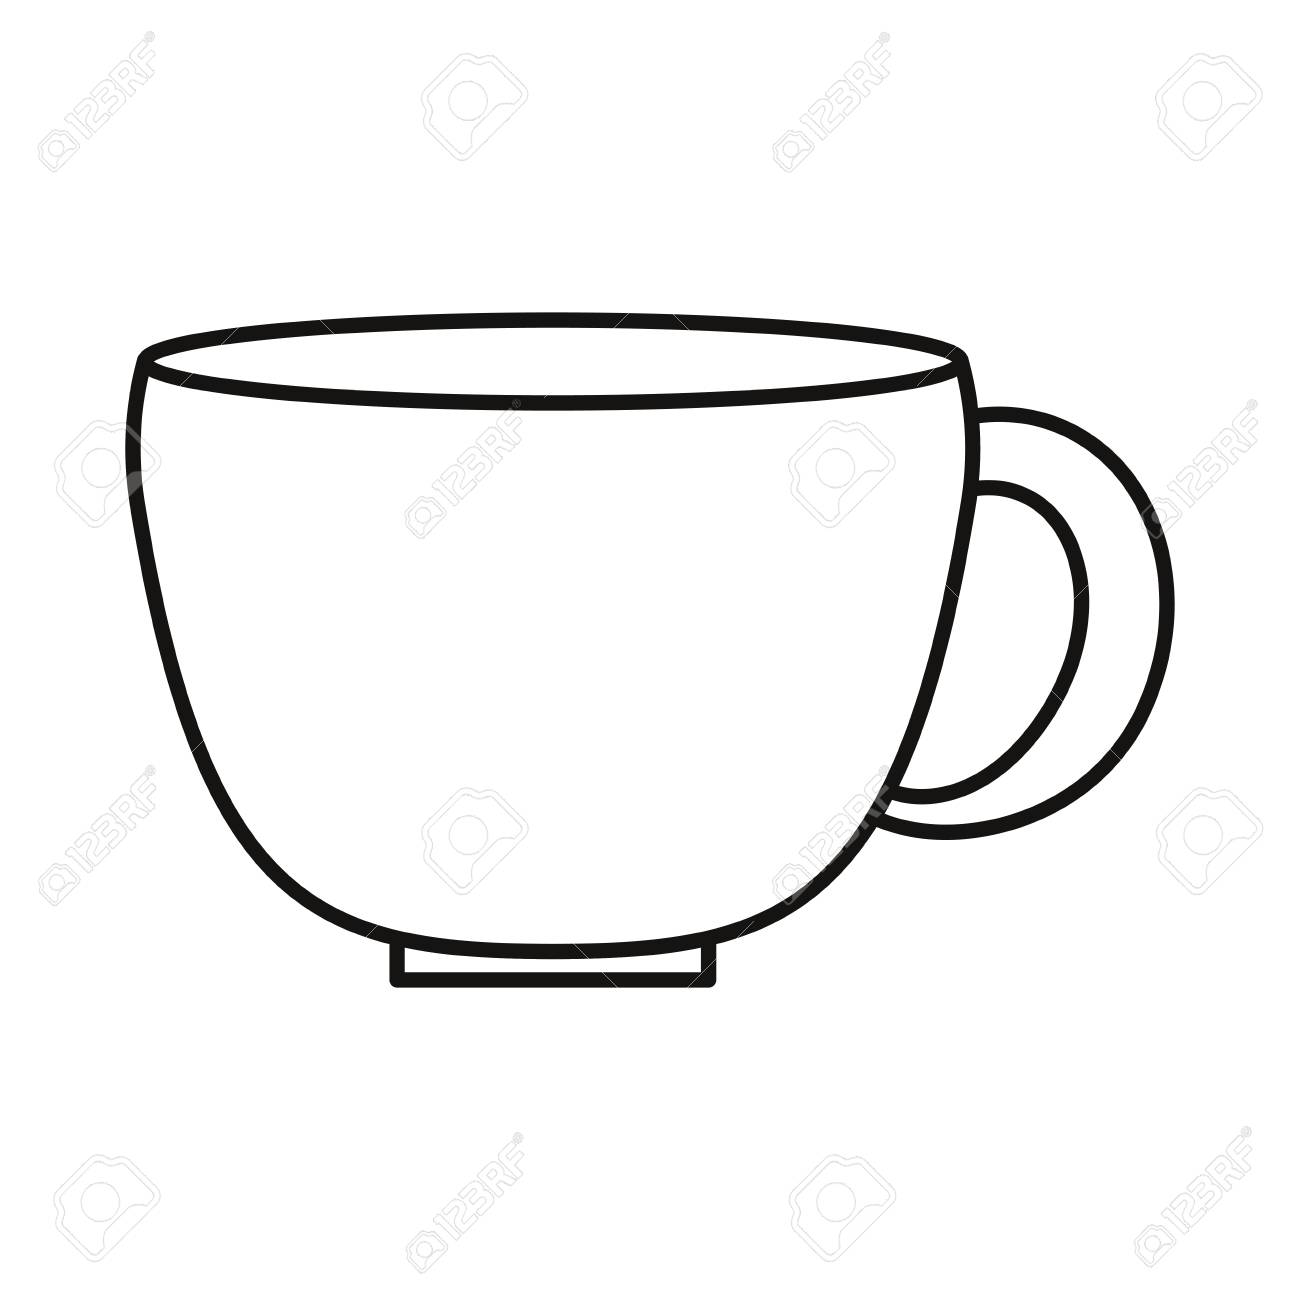 Coffee Mug Icon Over White Background Vector Illustration Royalty Free Cliparts Vectors And Stock Illustration Image 109746907